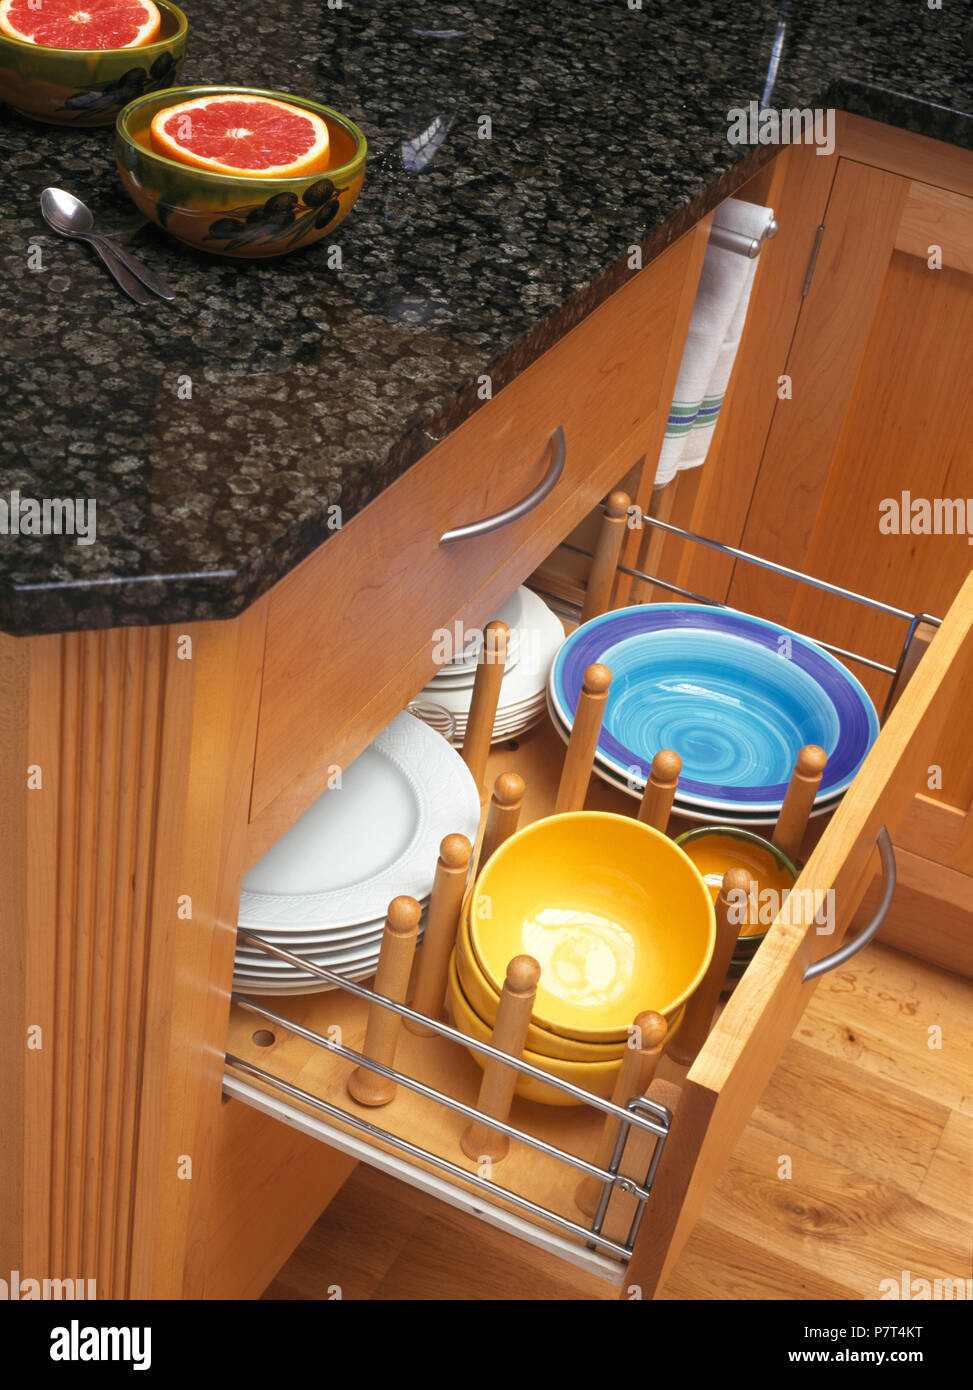 Kitchen unit with open drawer storing plates and bowls - Stock Image